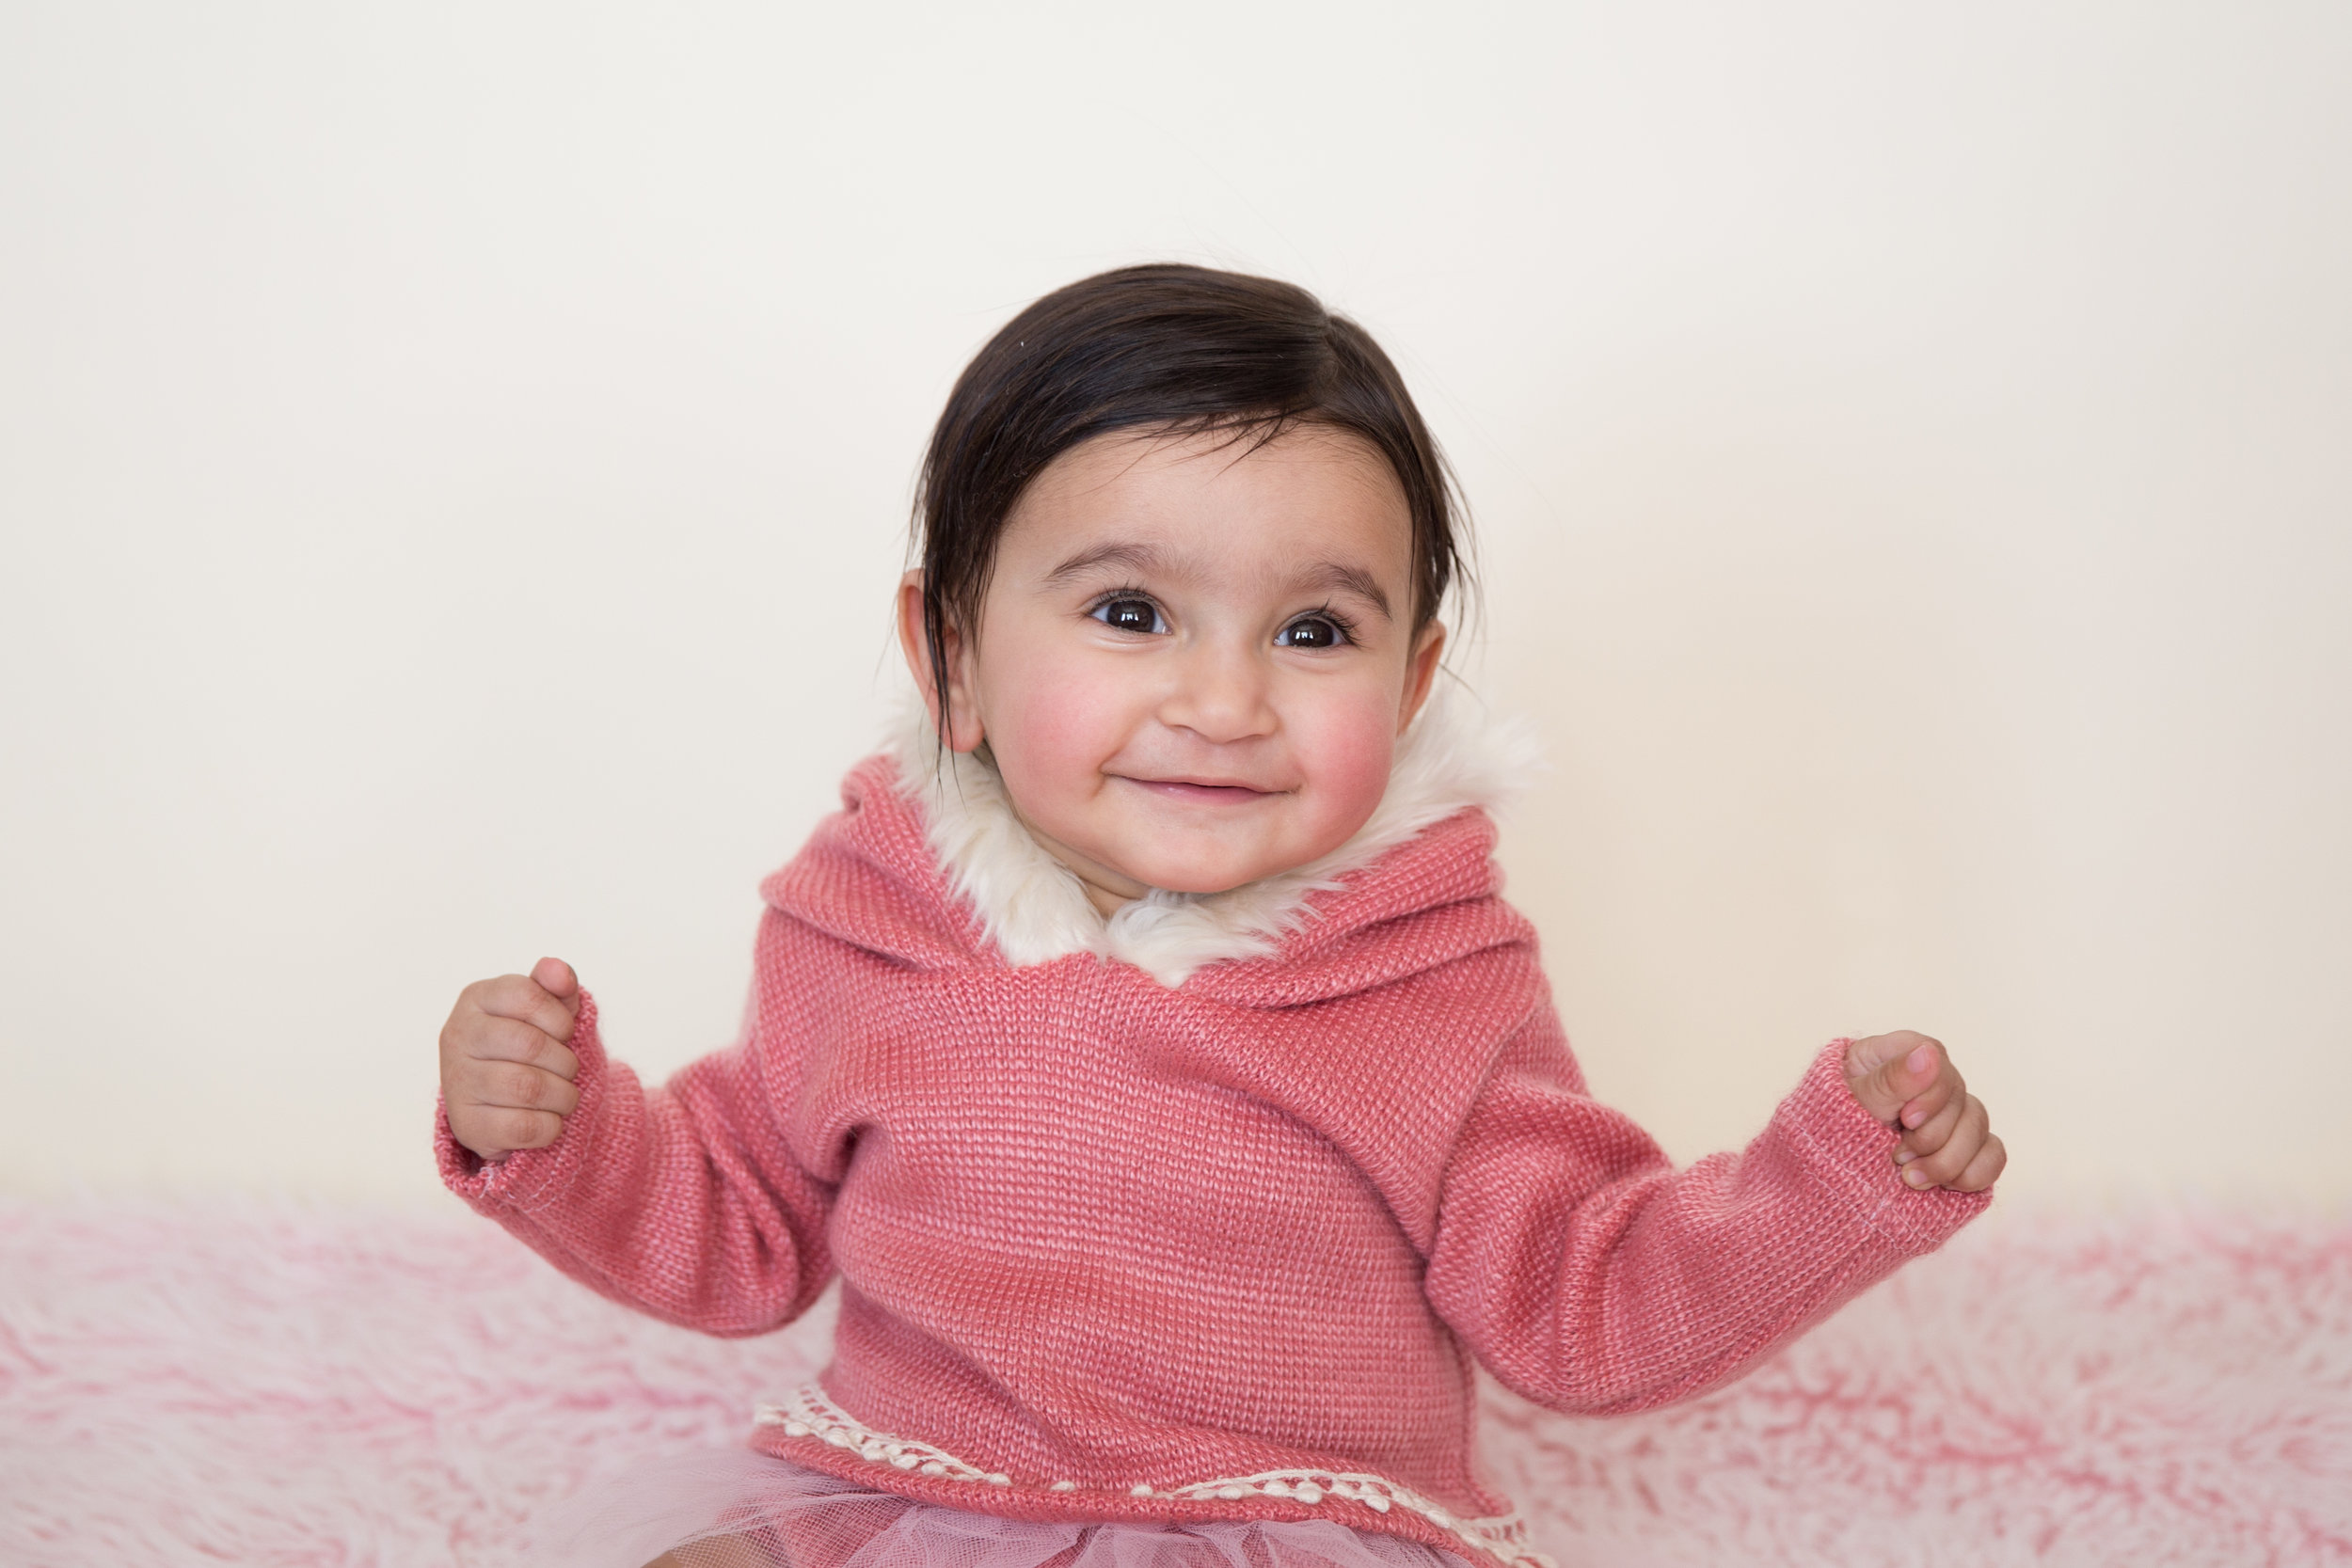 Adorable baby girl in a pink wintery outfit for a Calgary baby milestone photo session.